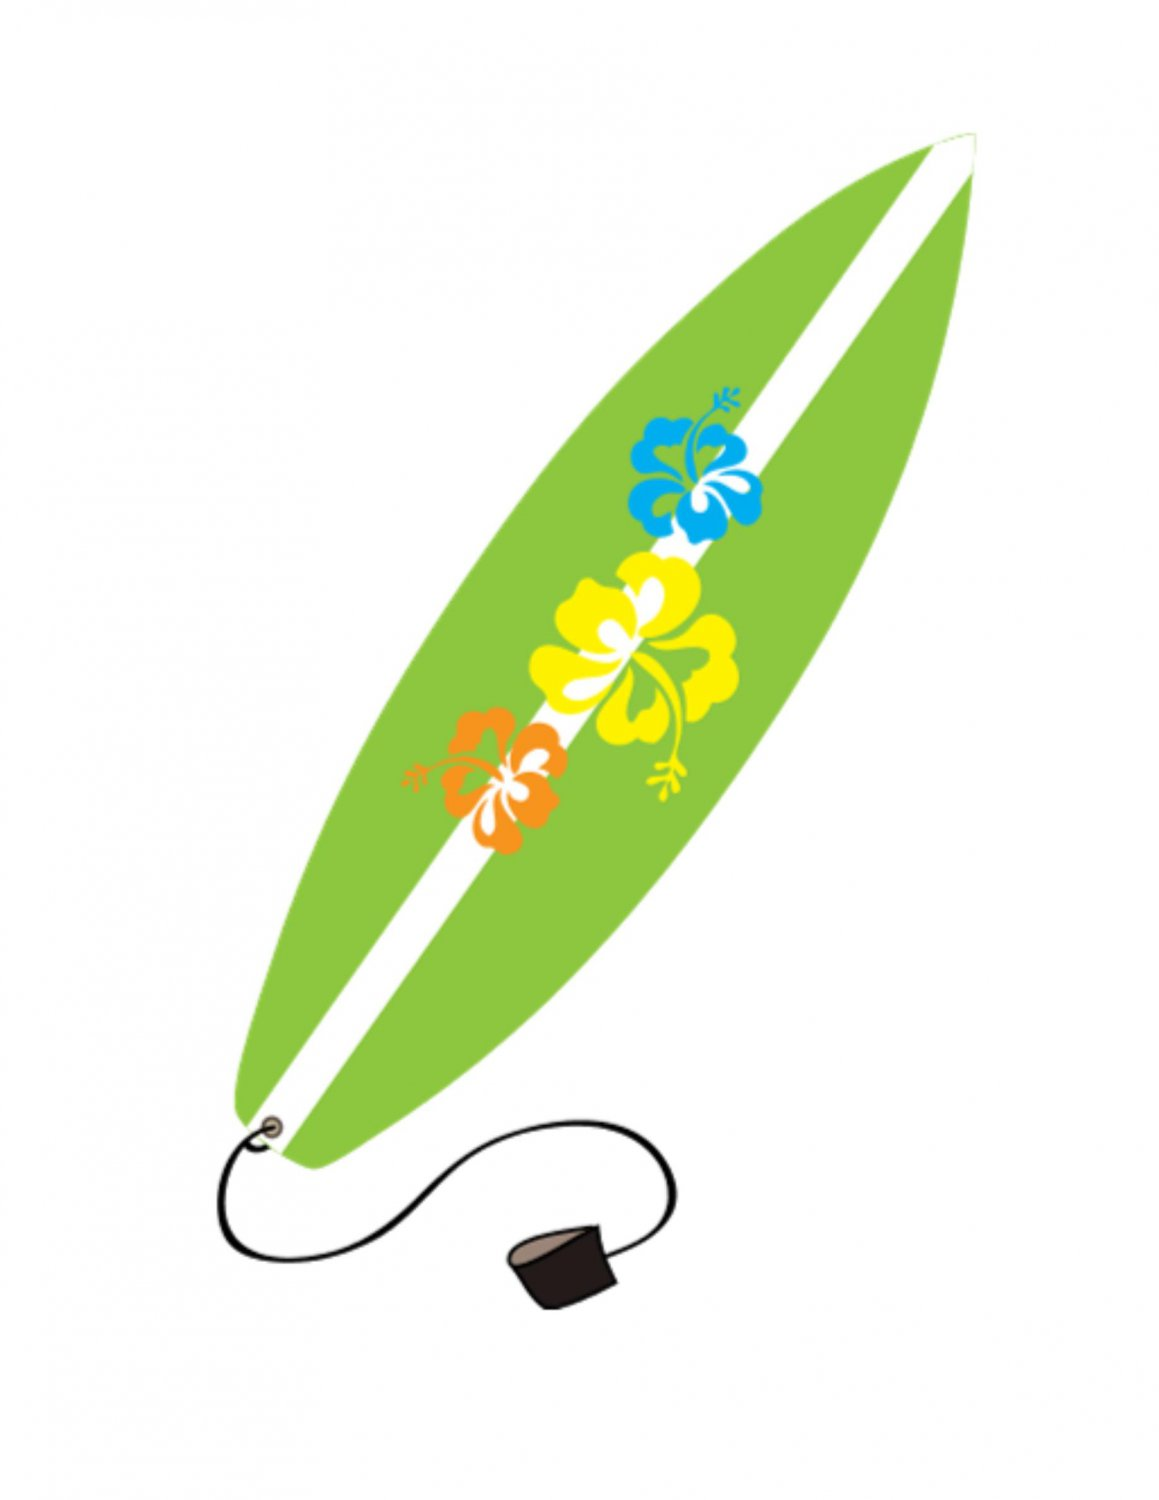 Surfboard clipart #2, Download drawings